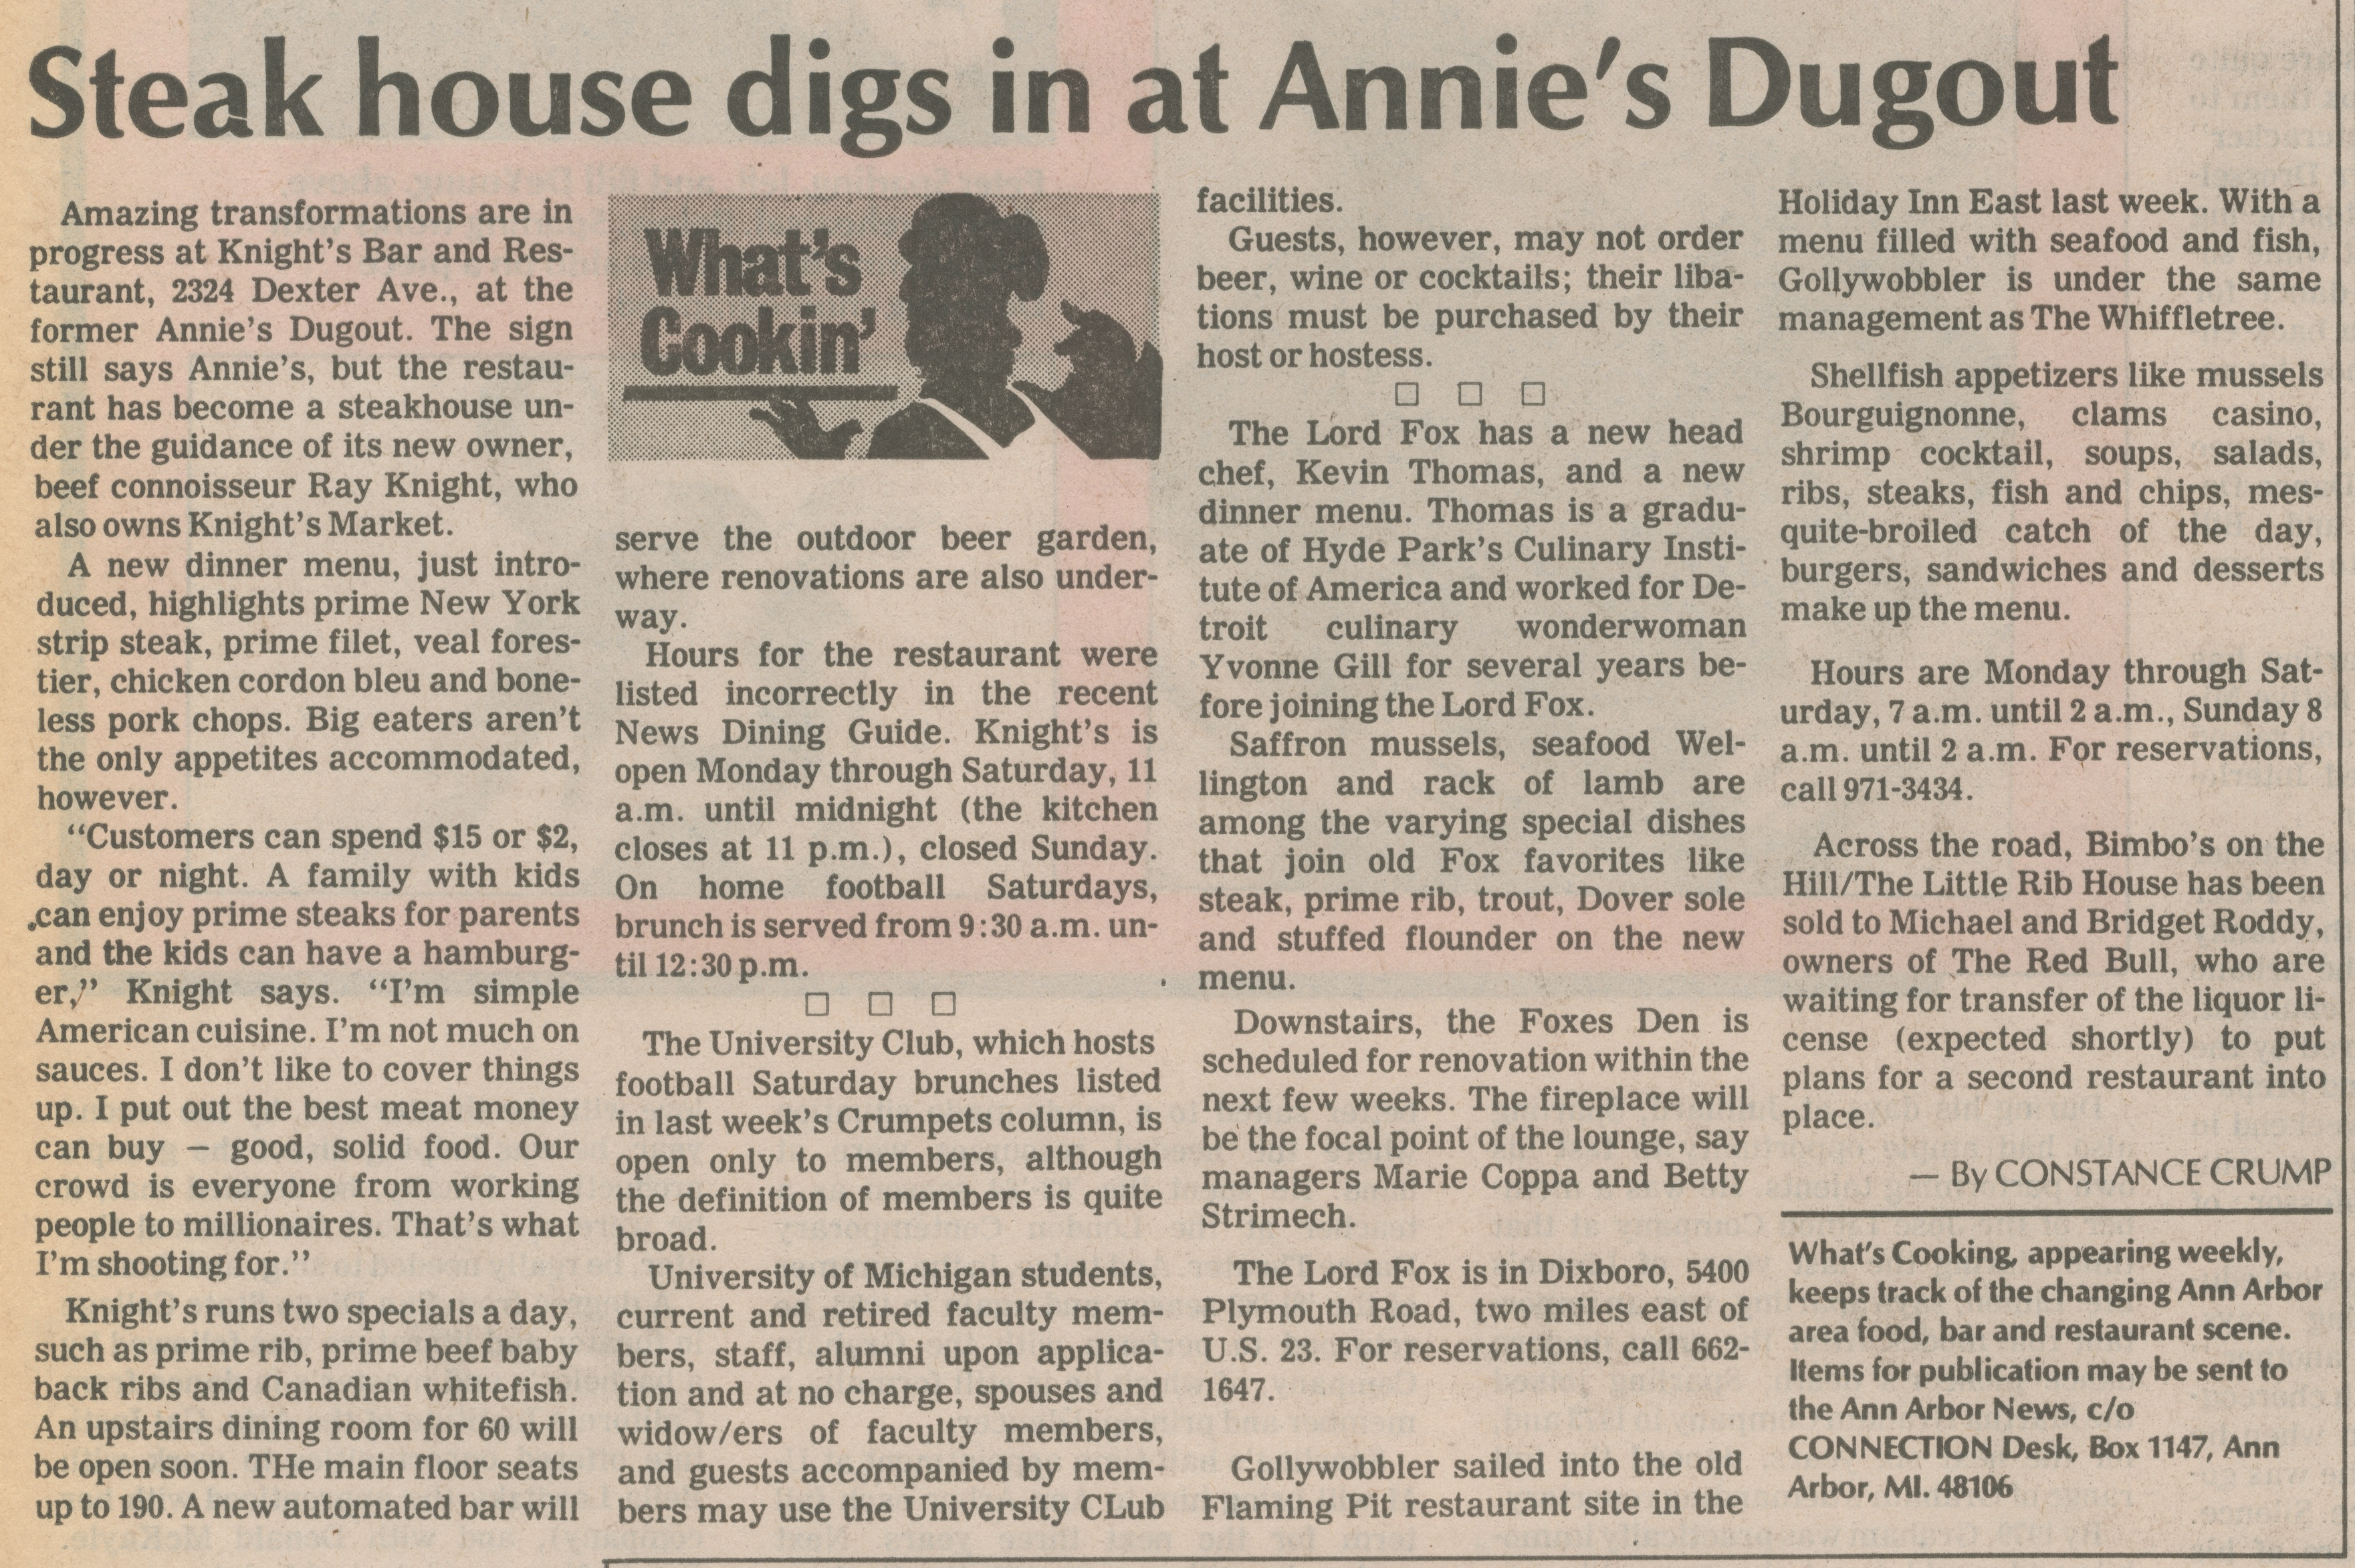 Steak House Digs In At Annie's Dugout image